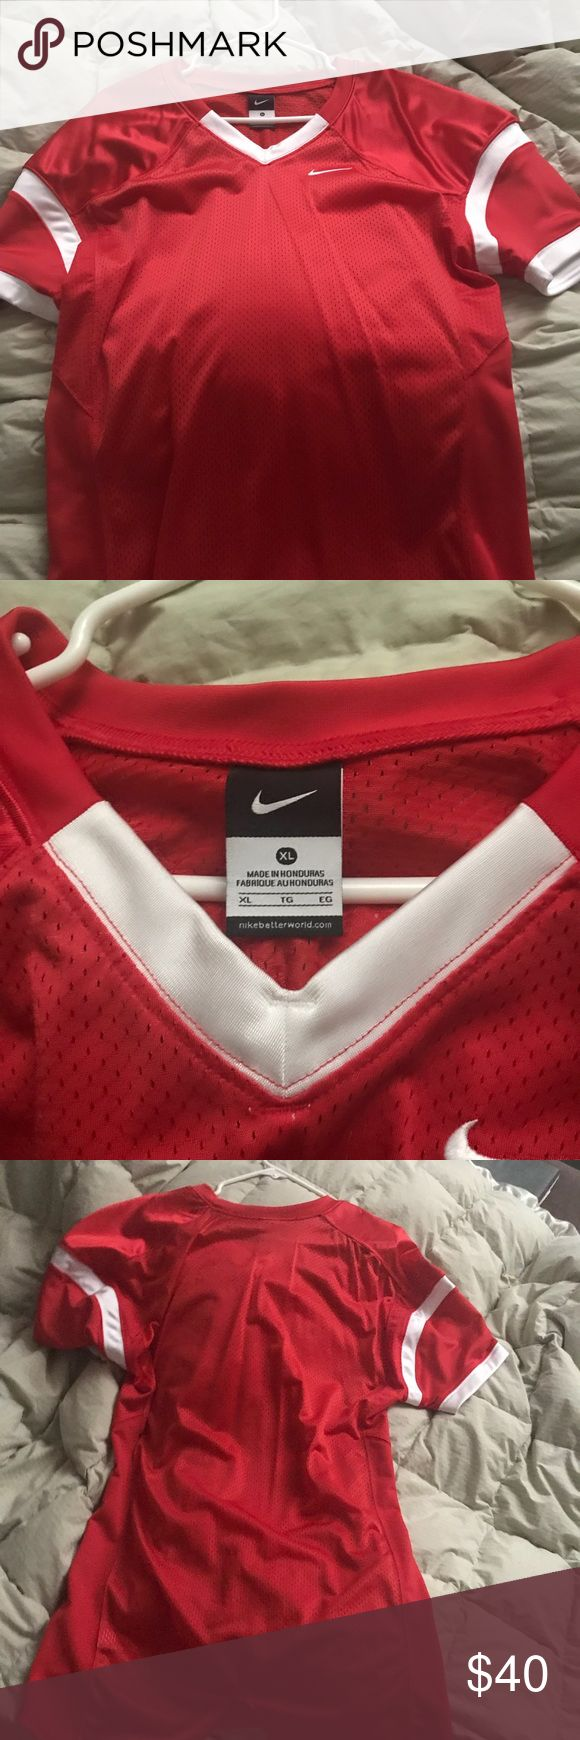 Red Nike Jersey Basic red and white football jersey. Anyone can wear it  Men can use it for football Also women can wear it as an oversized dress with some nice shoes  In new condition  I only wore it once with some white airforce 1s Nike Shirts Tees - Short Sleeve